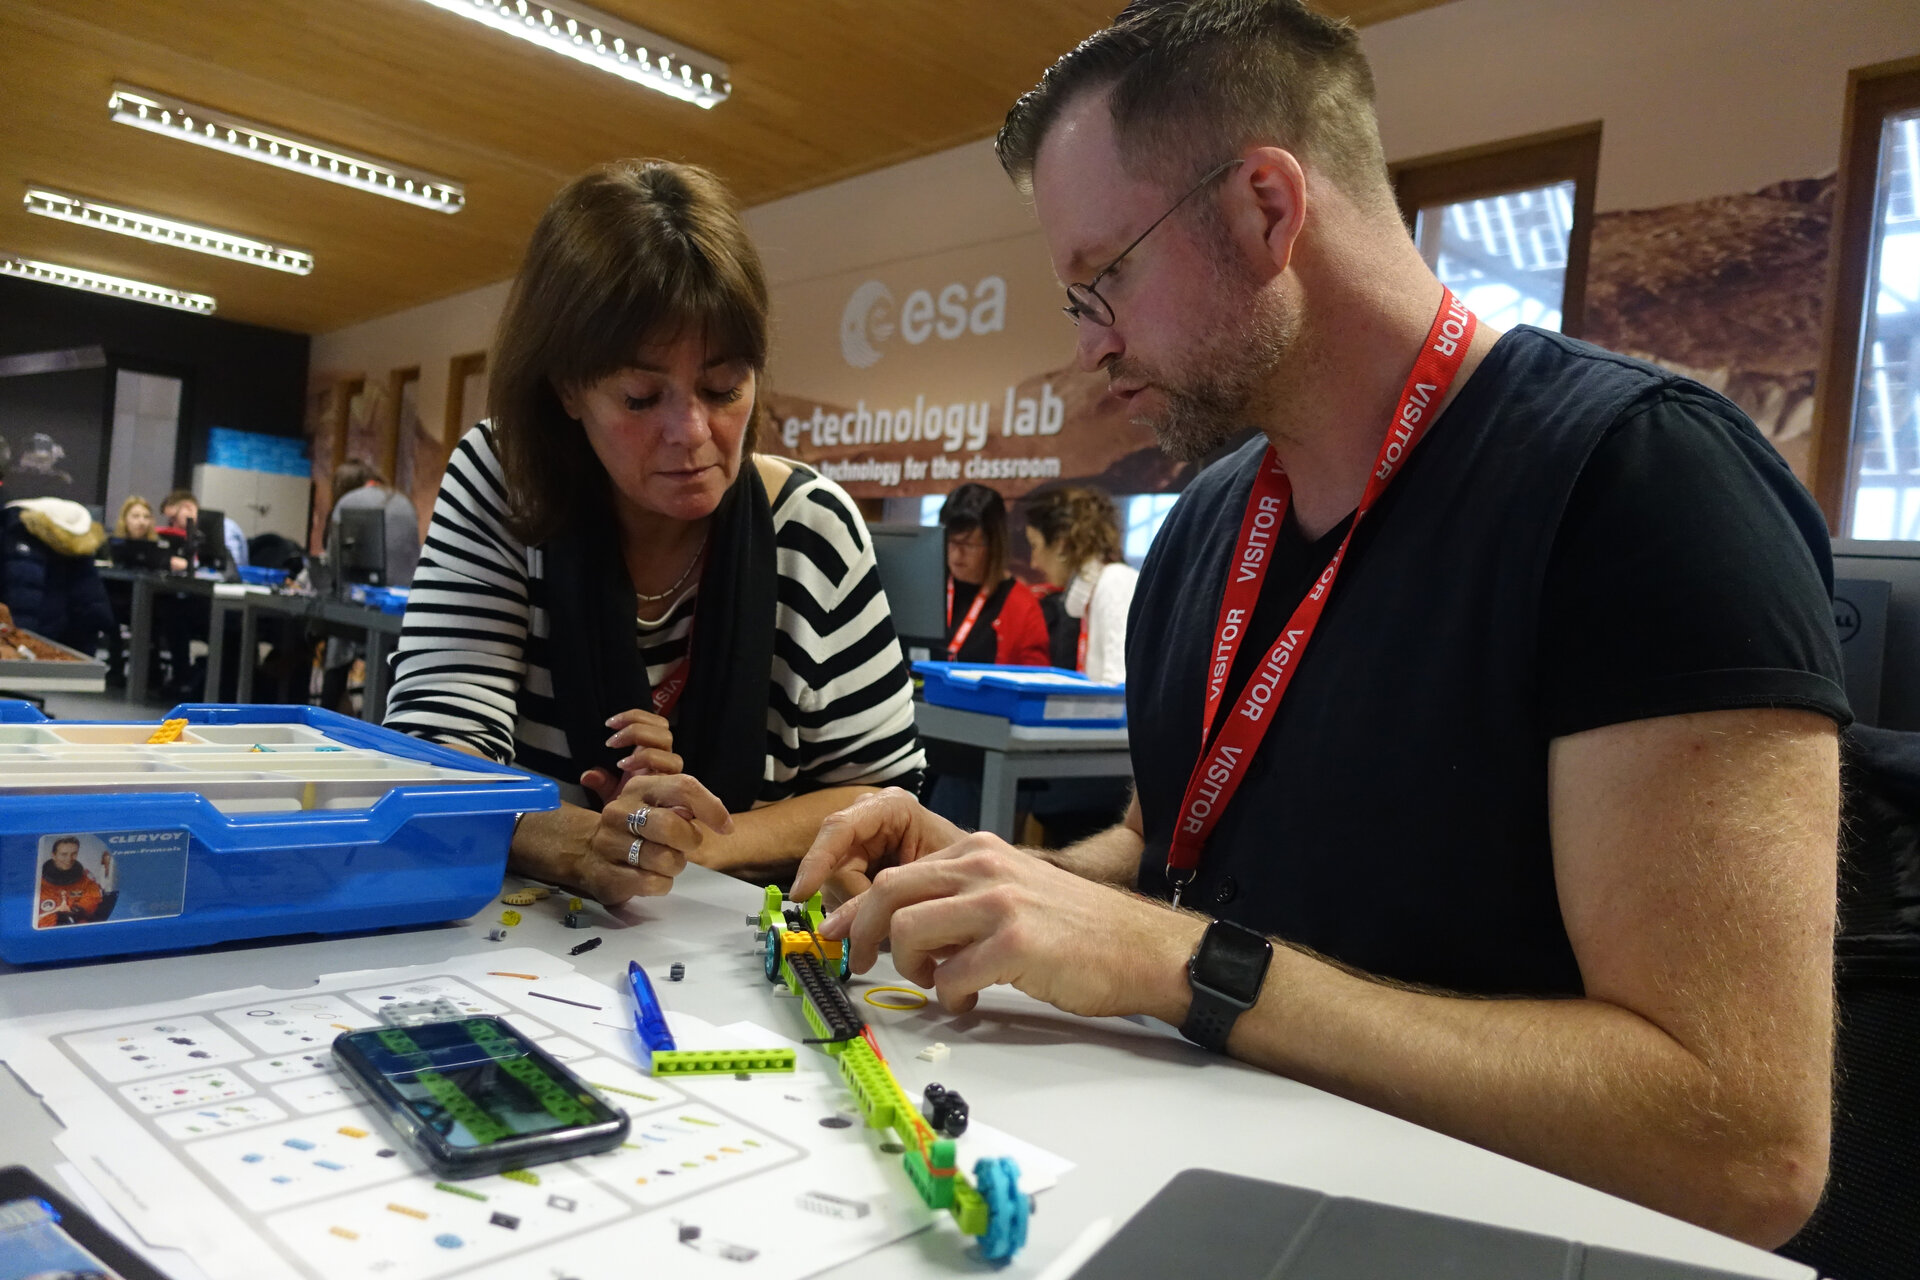 Teachers building a rover together